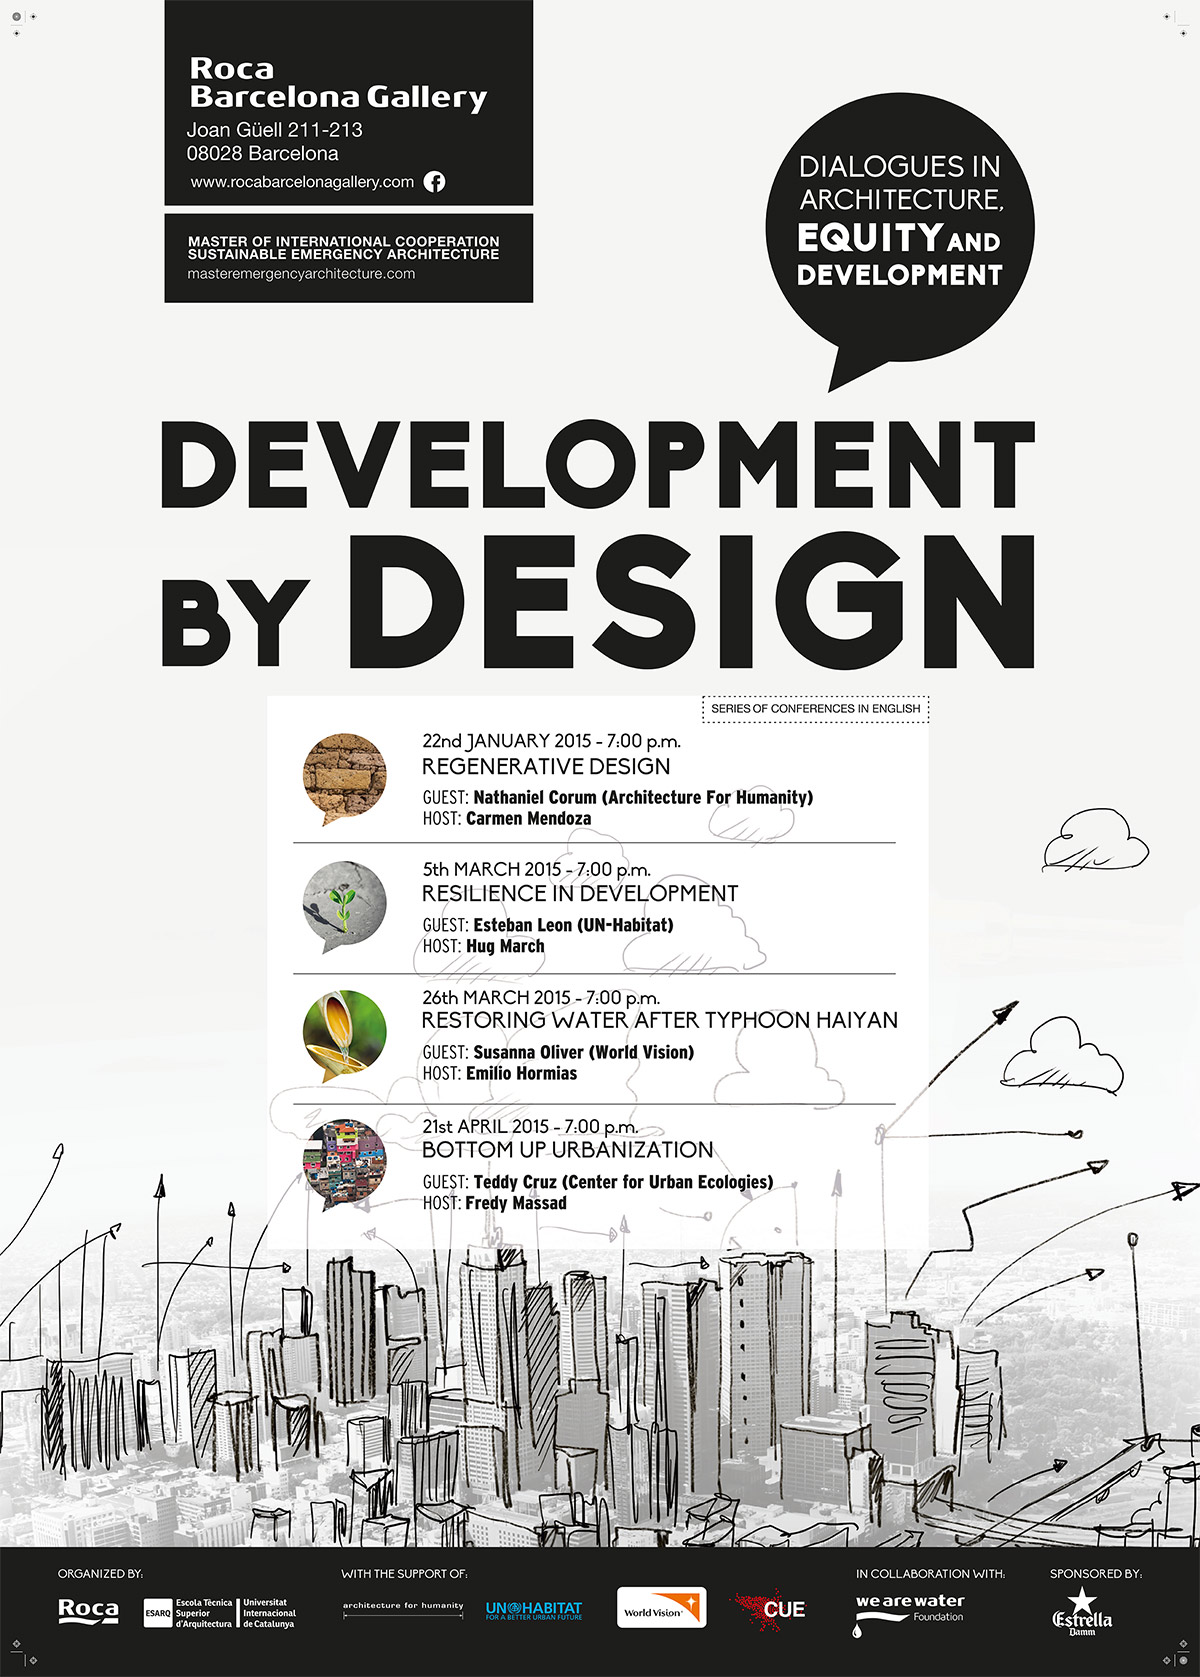 Our Development by Design Dialogues start January 22!